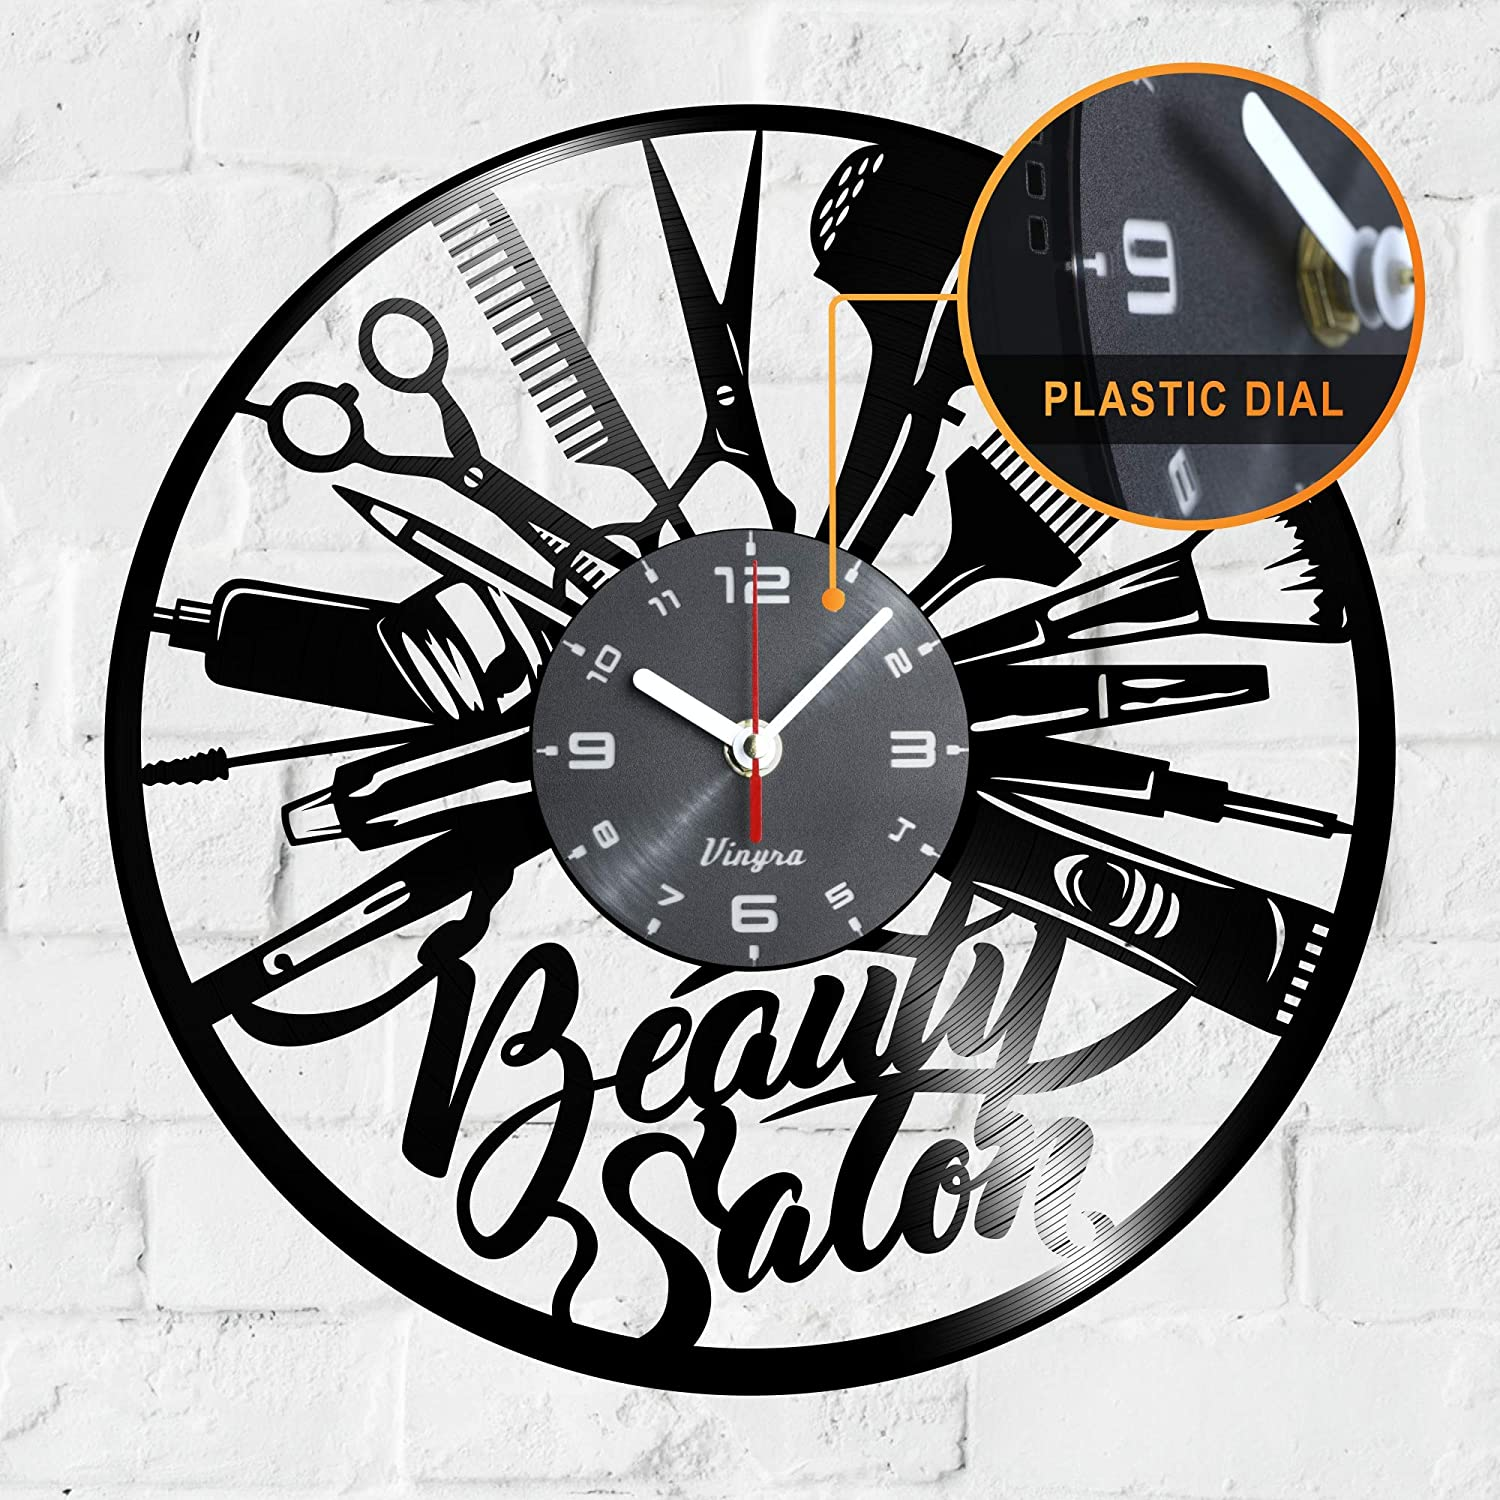 Beauty Salon Clock Vinyl - Beauty Salon Vinyl Record Wall LP Clock - Hairdresser Gifts for Hair Stylist - Beauty Salon Themed Art Wall Room Home Decor Hair Salon Wall Decorations Gift Set Clock Black